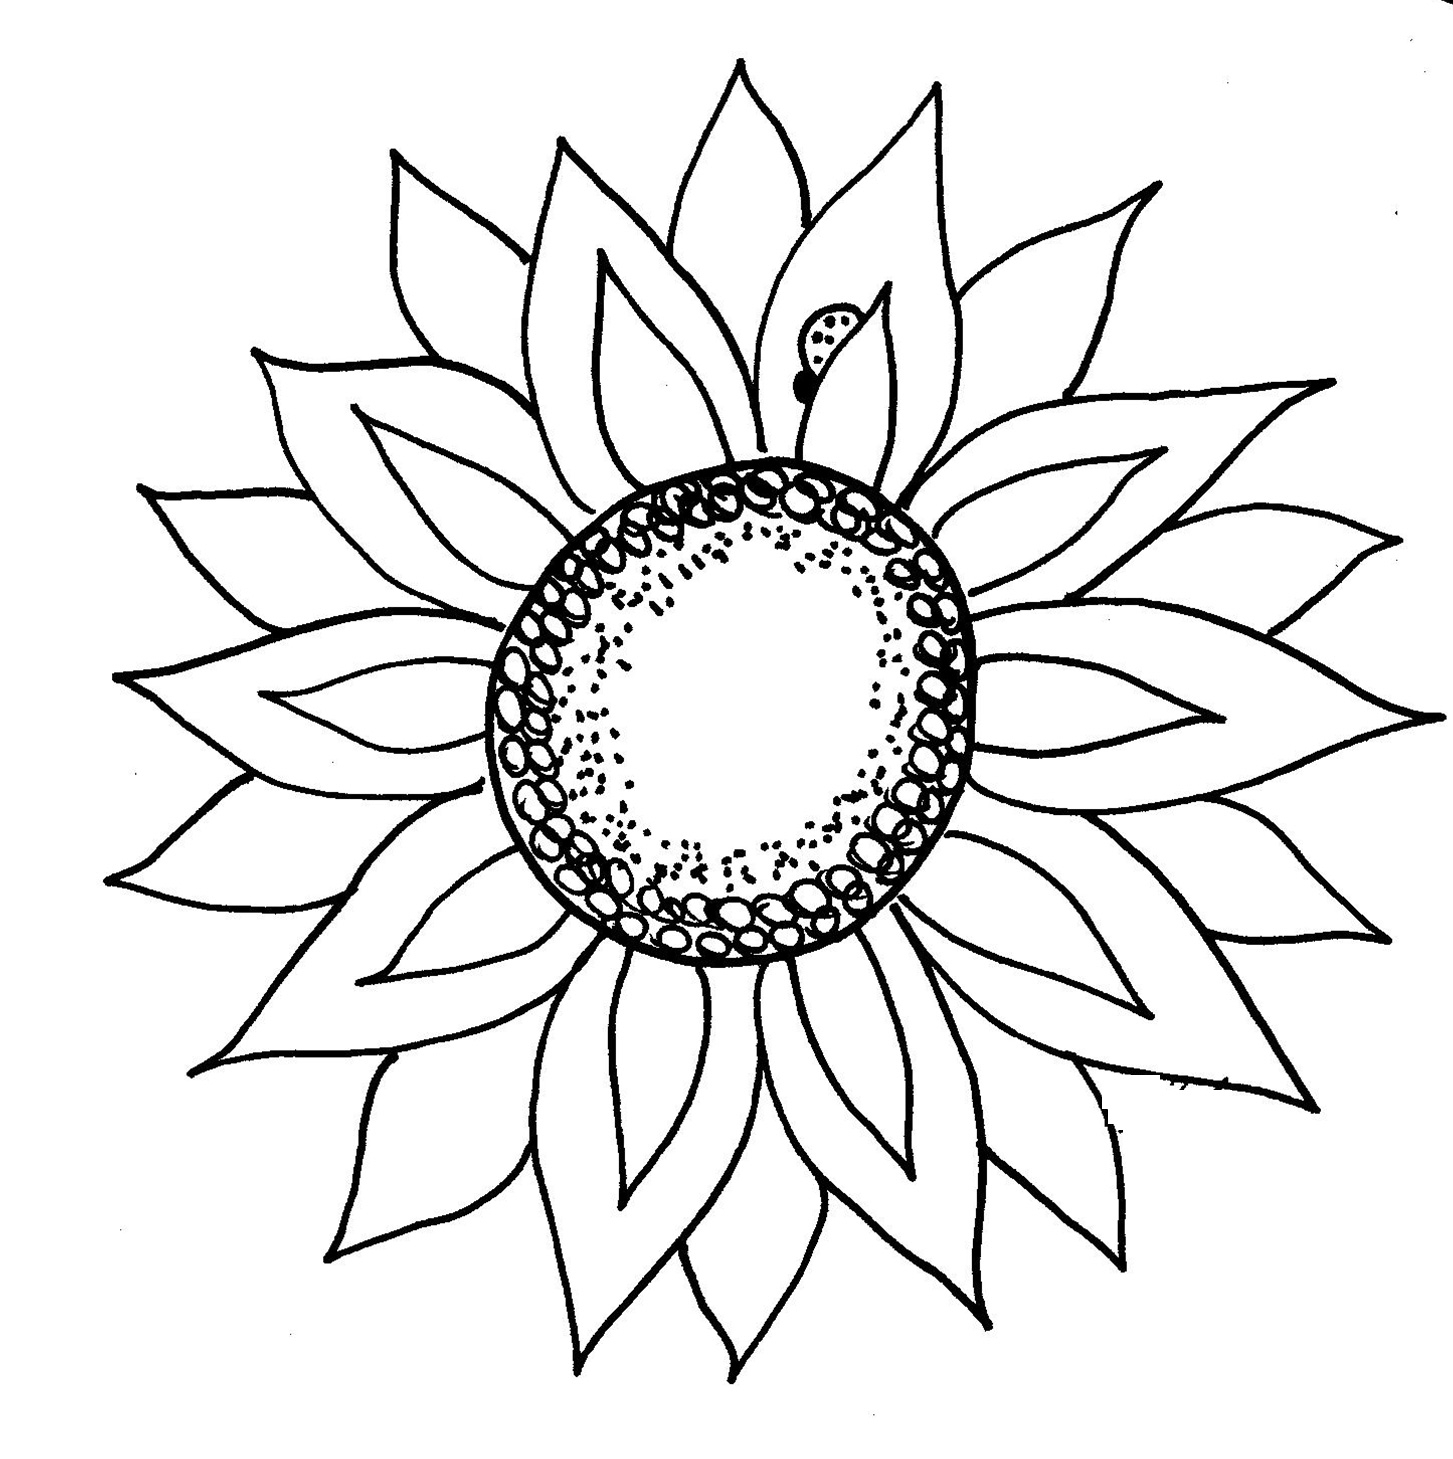 Sunflower Black And White Drawing At Getdrawings